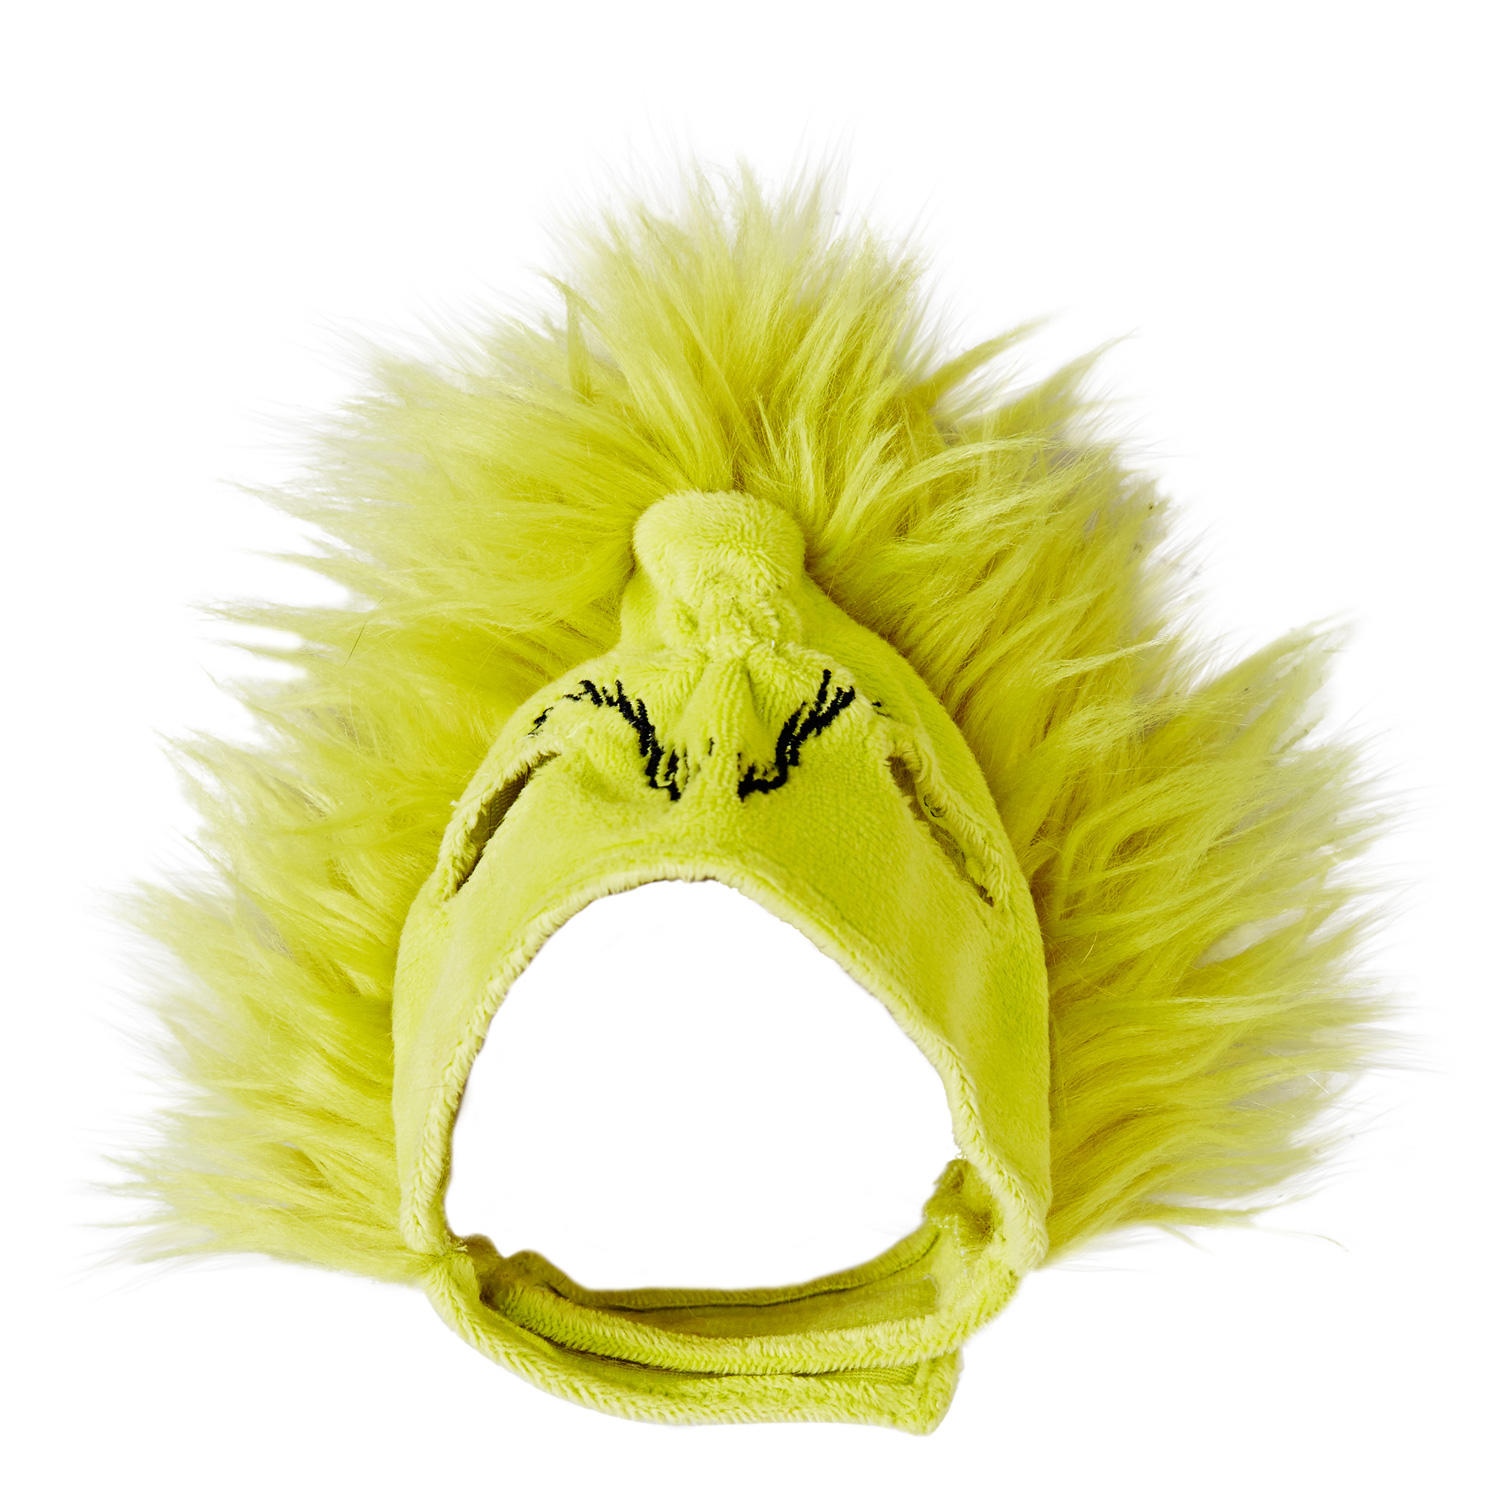 Dr. Seuss Grinch Headpiece for Cats from petco.com | Darwins